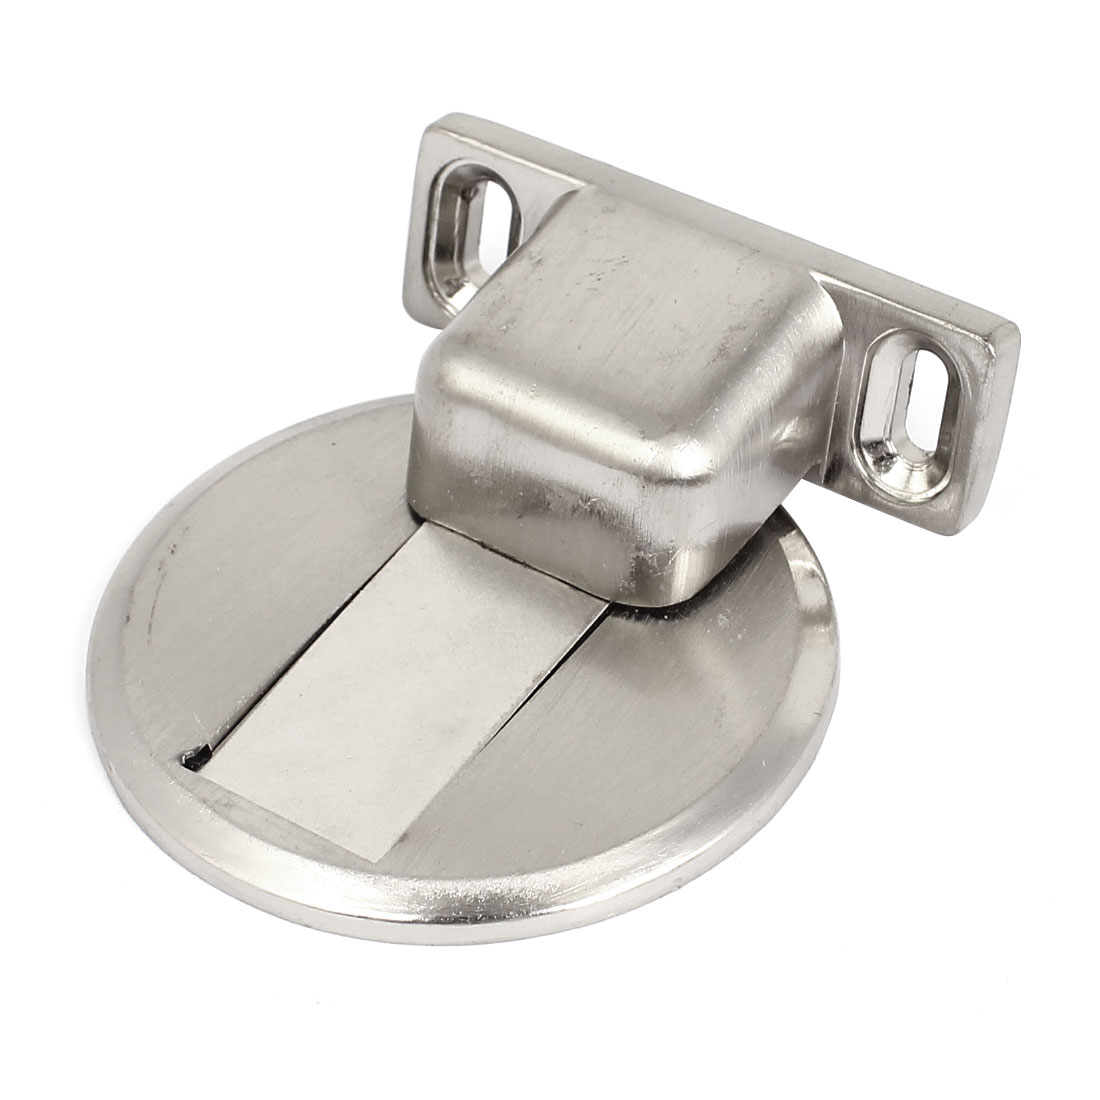 Home Office Stainless Steel Magnetic Door Stop Stopper Catch w Screws